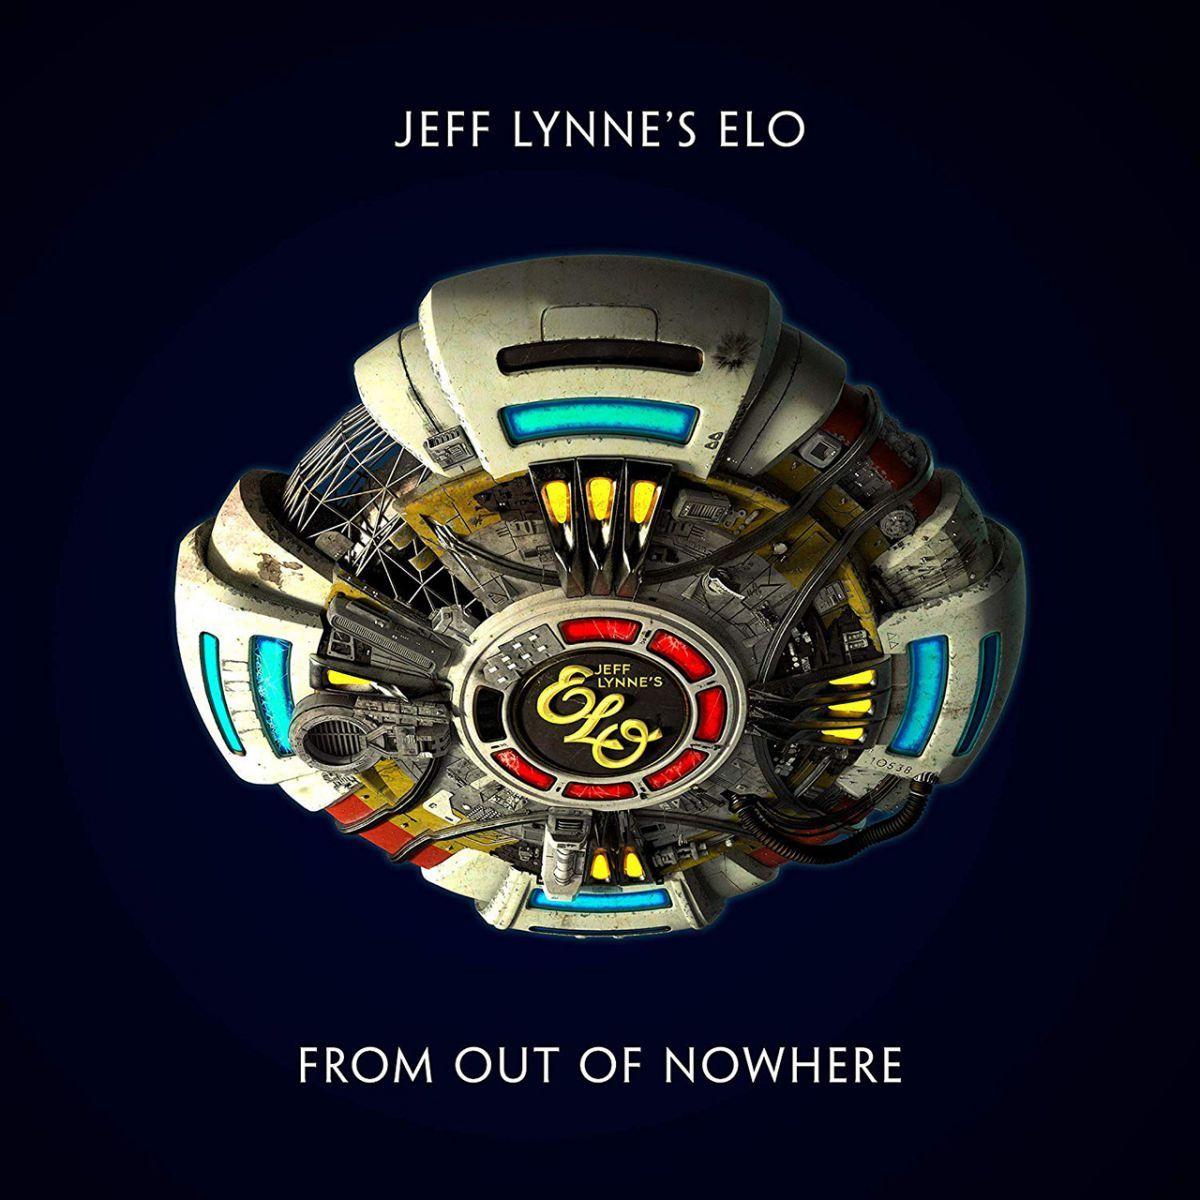 Jeff Lynne's ELO From out of Nowhere Album Cover Artwork